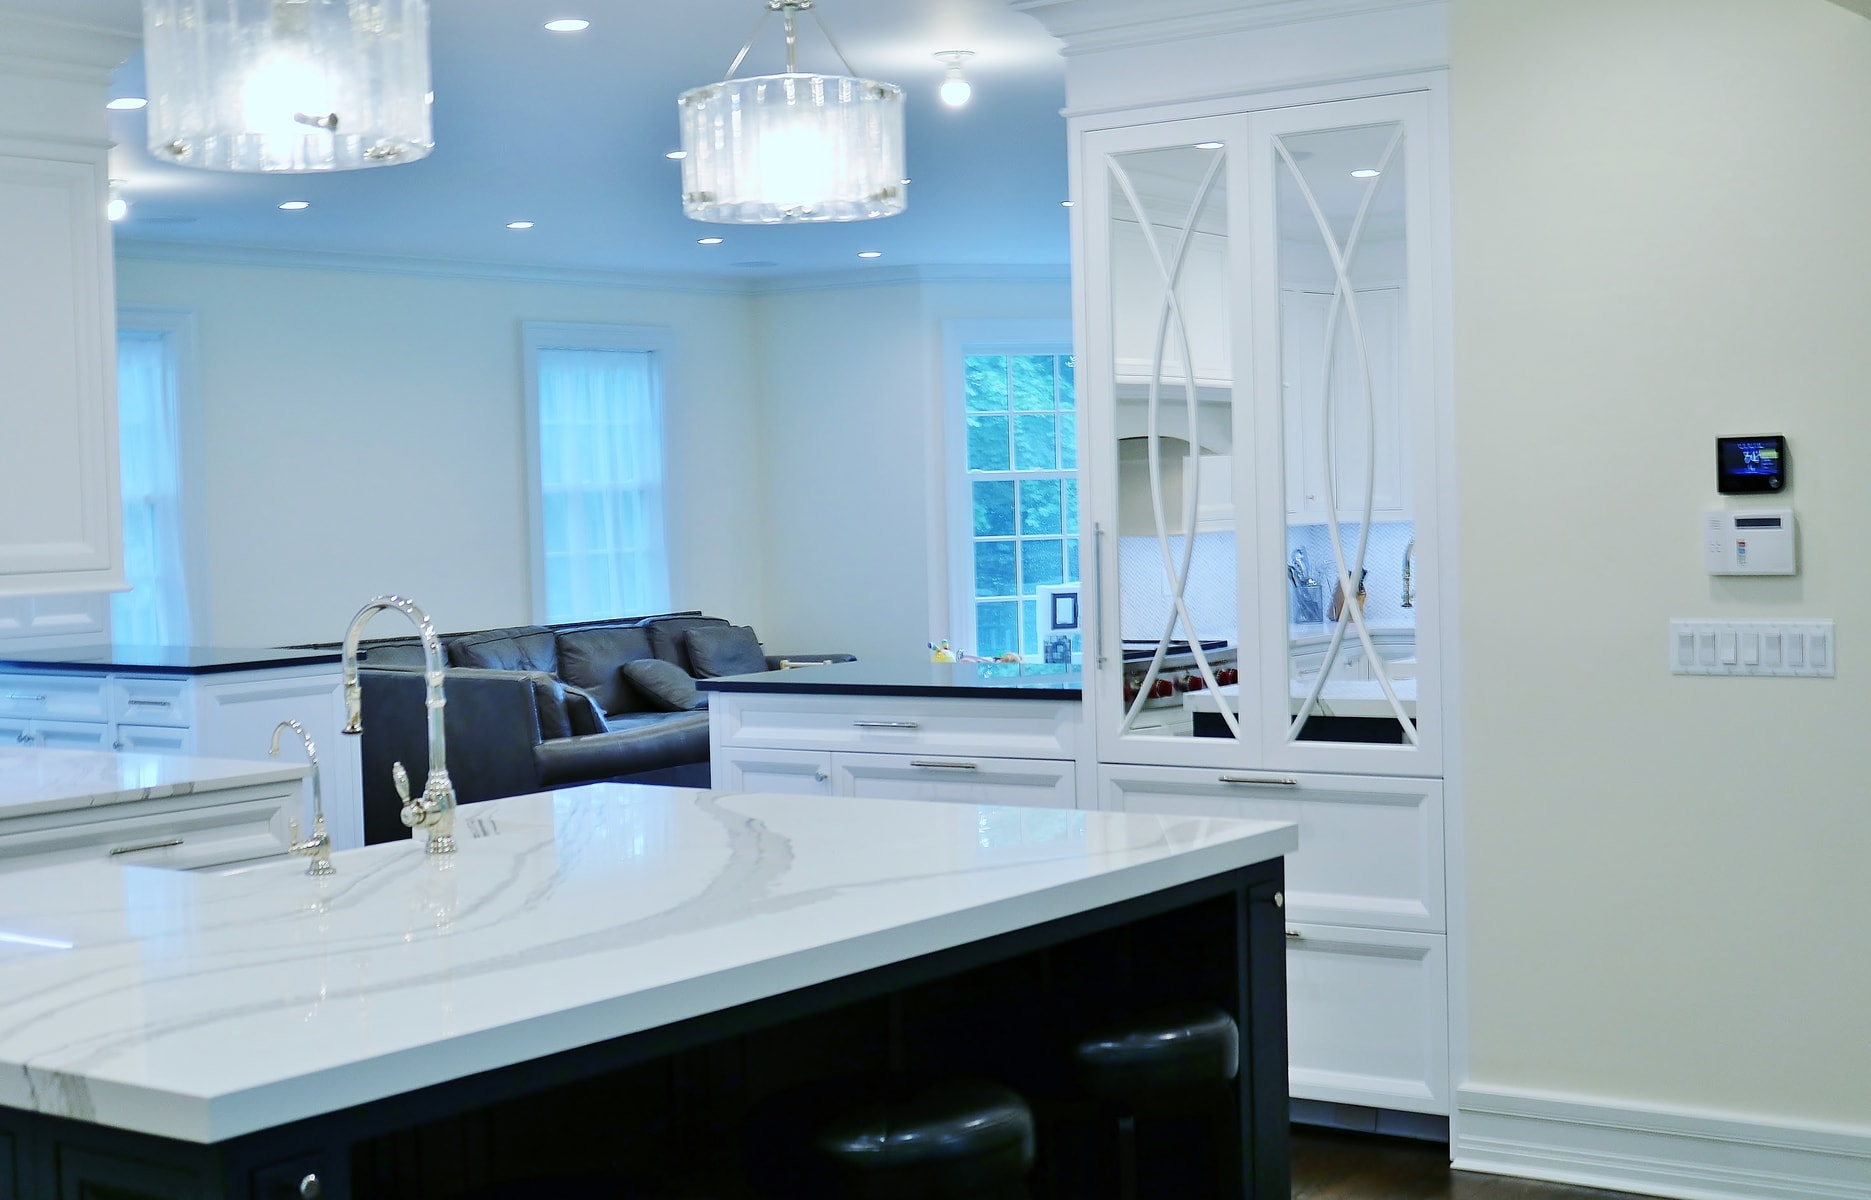 More than just a kitchen, its a work of art - RAJ Kitchen and Bath